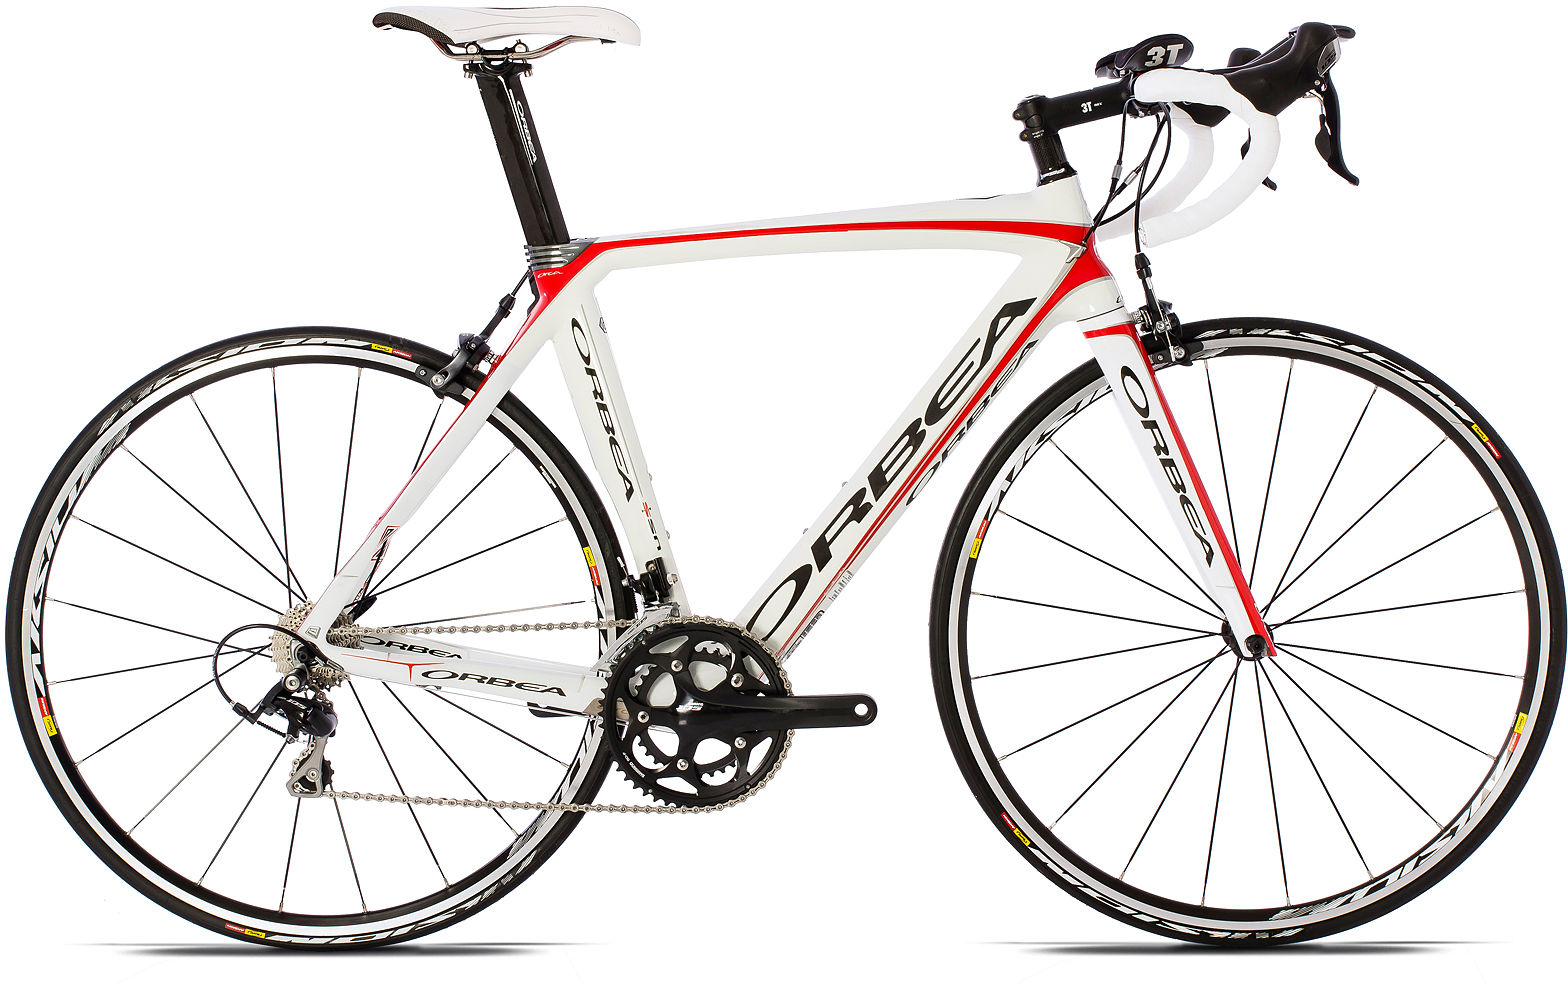 Orbea Orca Tri S105 Review